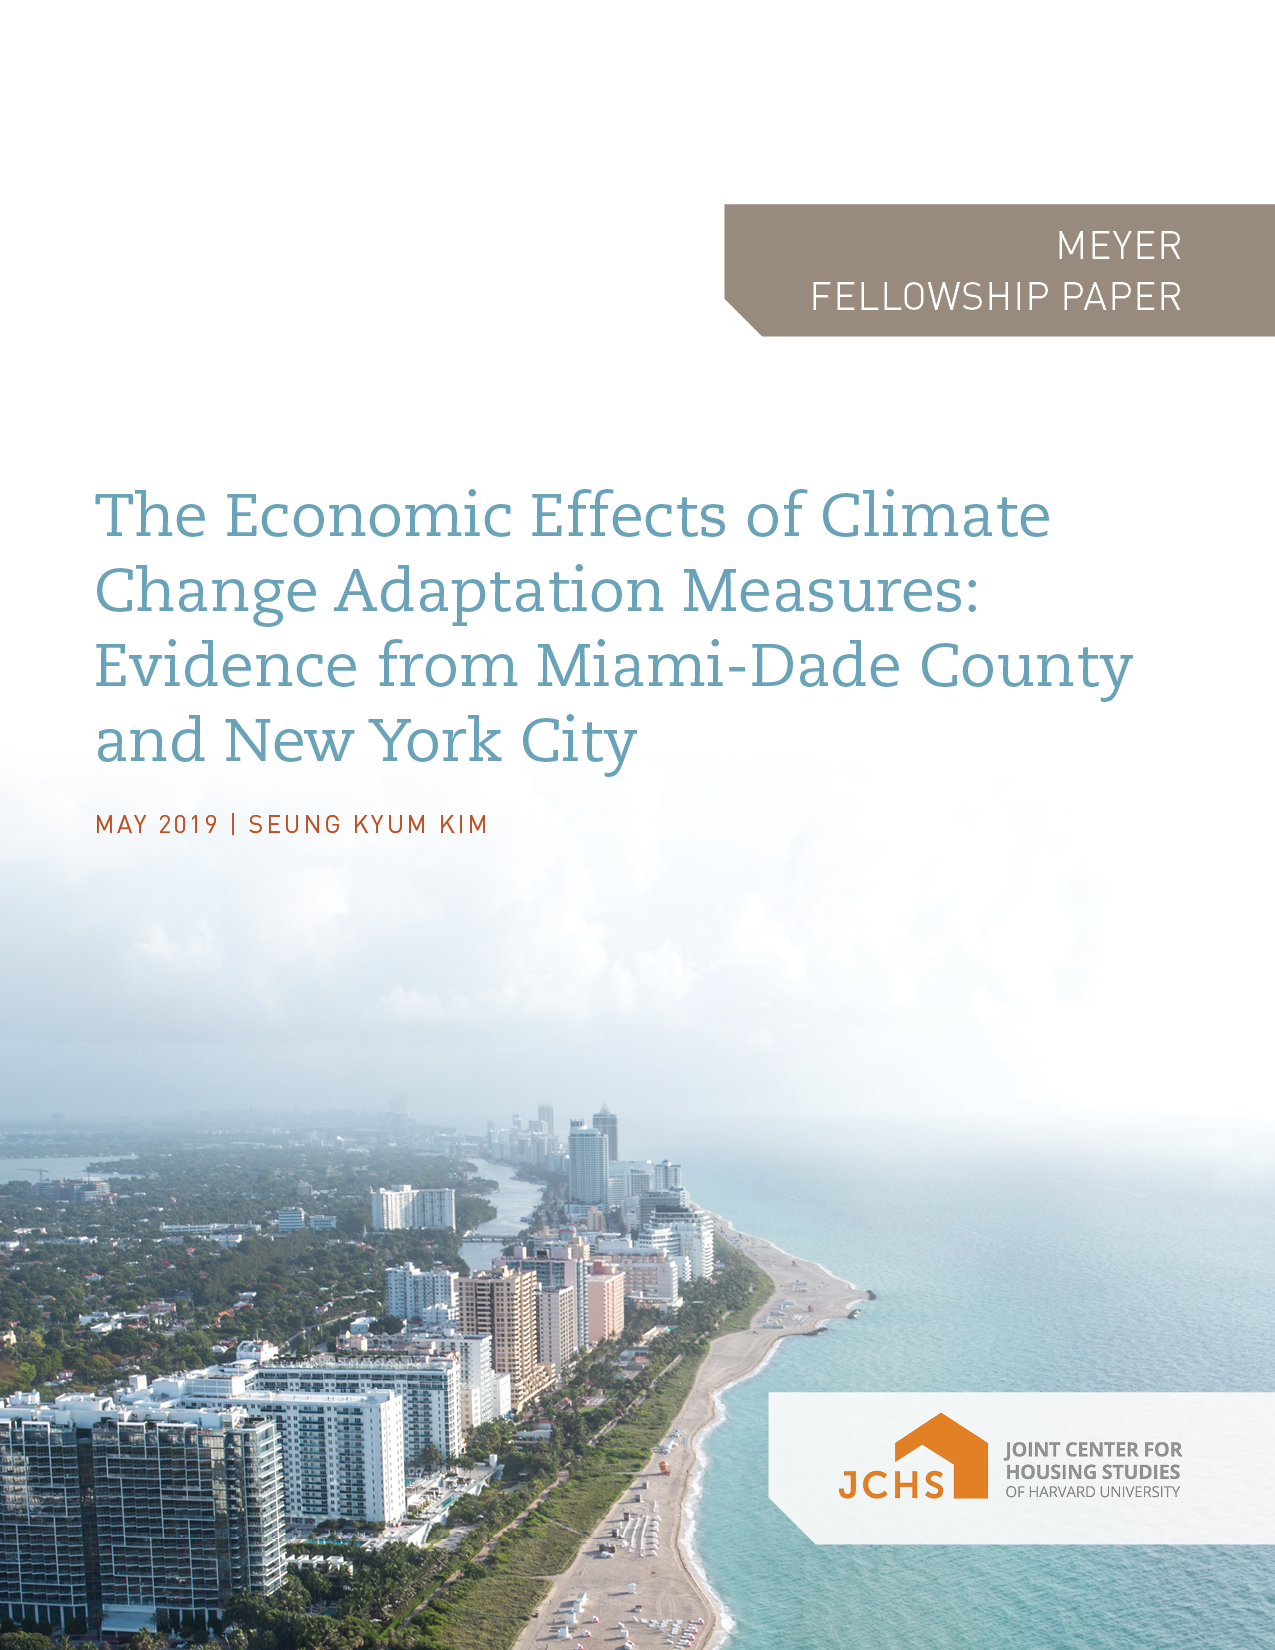 The Economic Effects of Climate Change Adaptation Measures: Evidence from Miami-Dade County and New York City